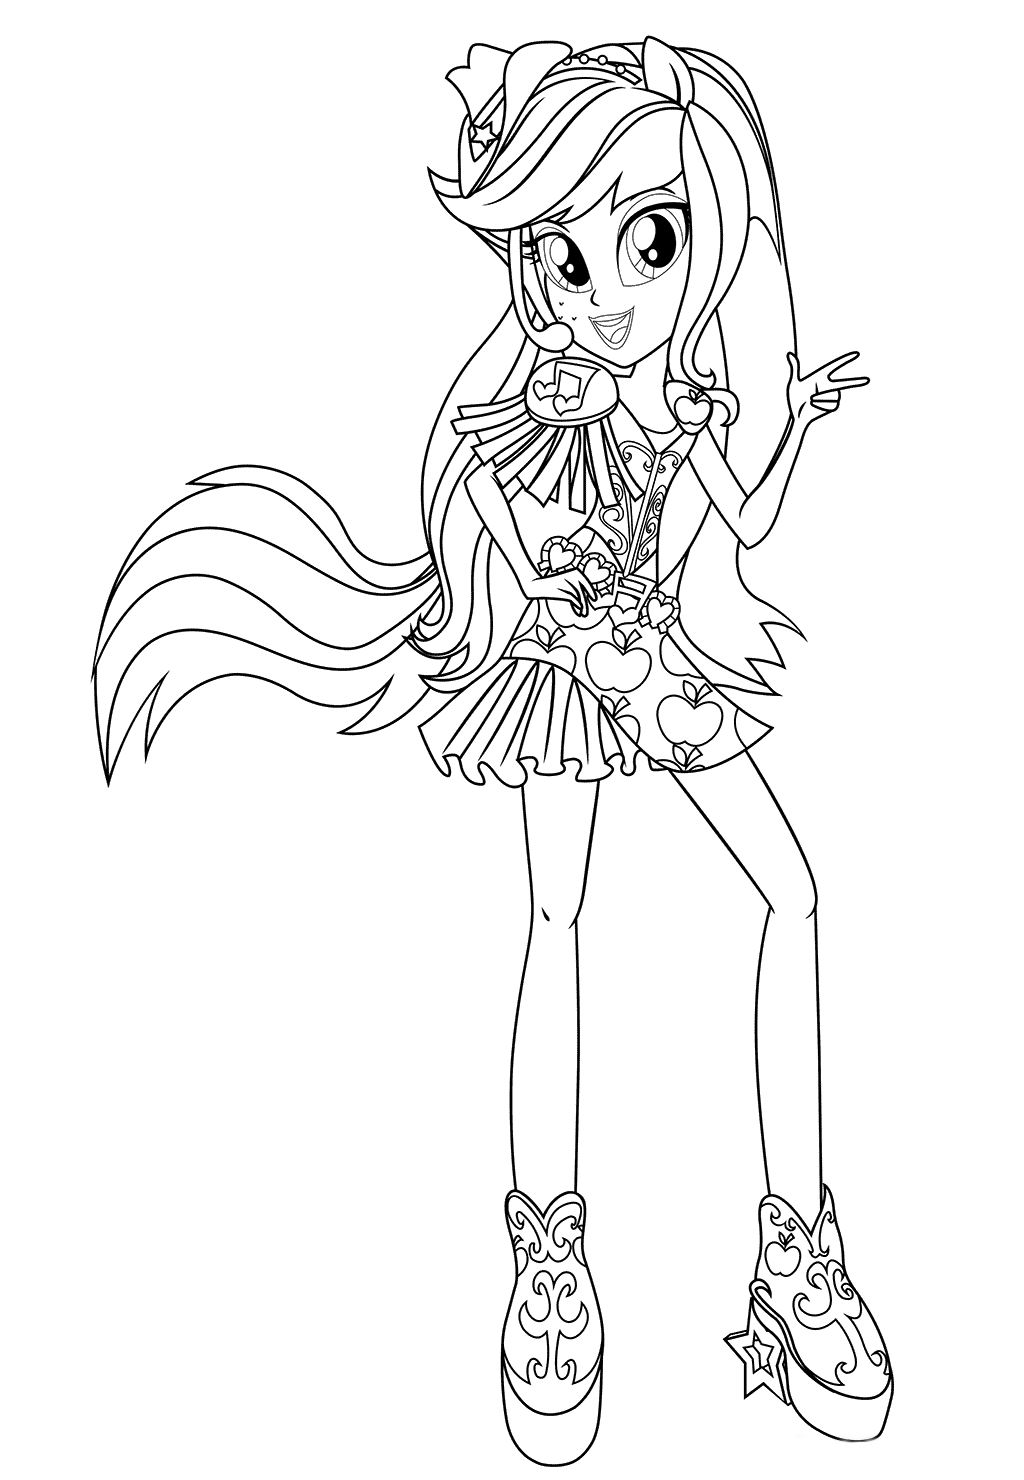 Applejack Coloring Pages Best Coloring Pages For Kids